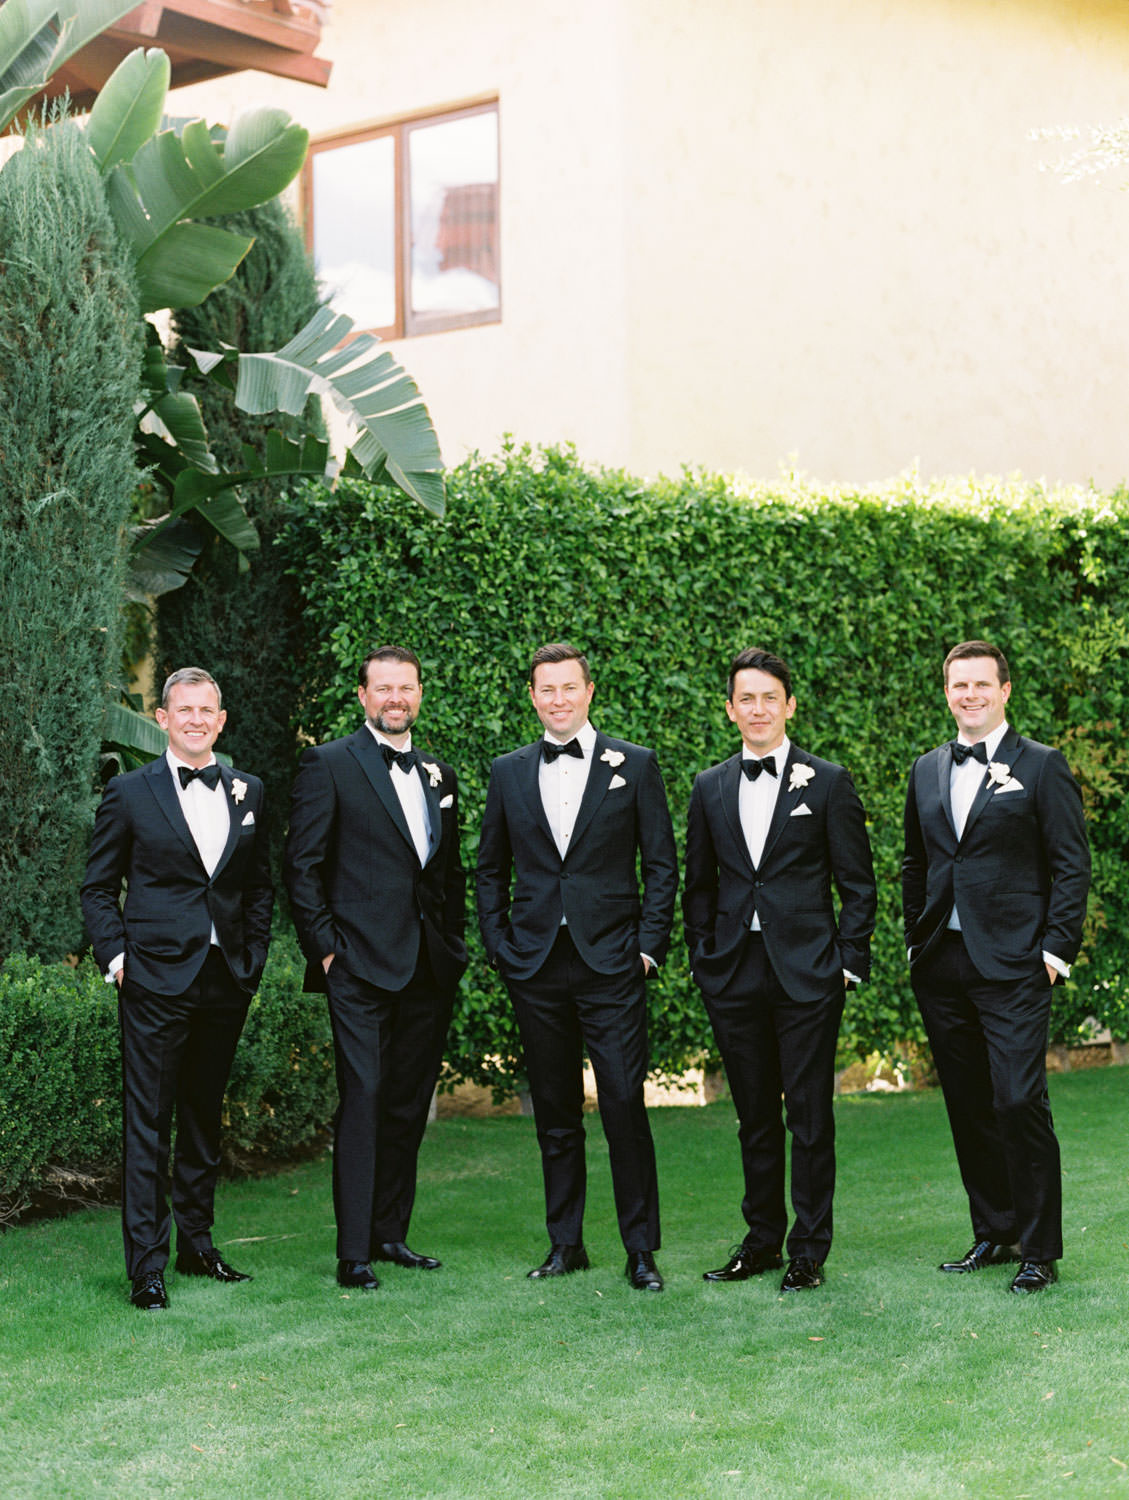 Groom and groomsmen in classic black tuxedos with single white rose for boutonniere in front of green hedges. Miramonte Resort wedding. Film photography by Cavin Elizabeth.